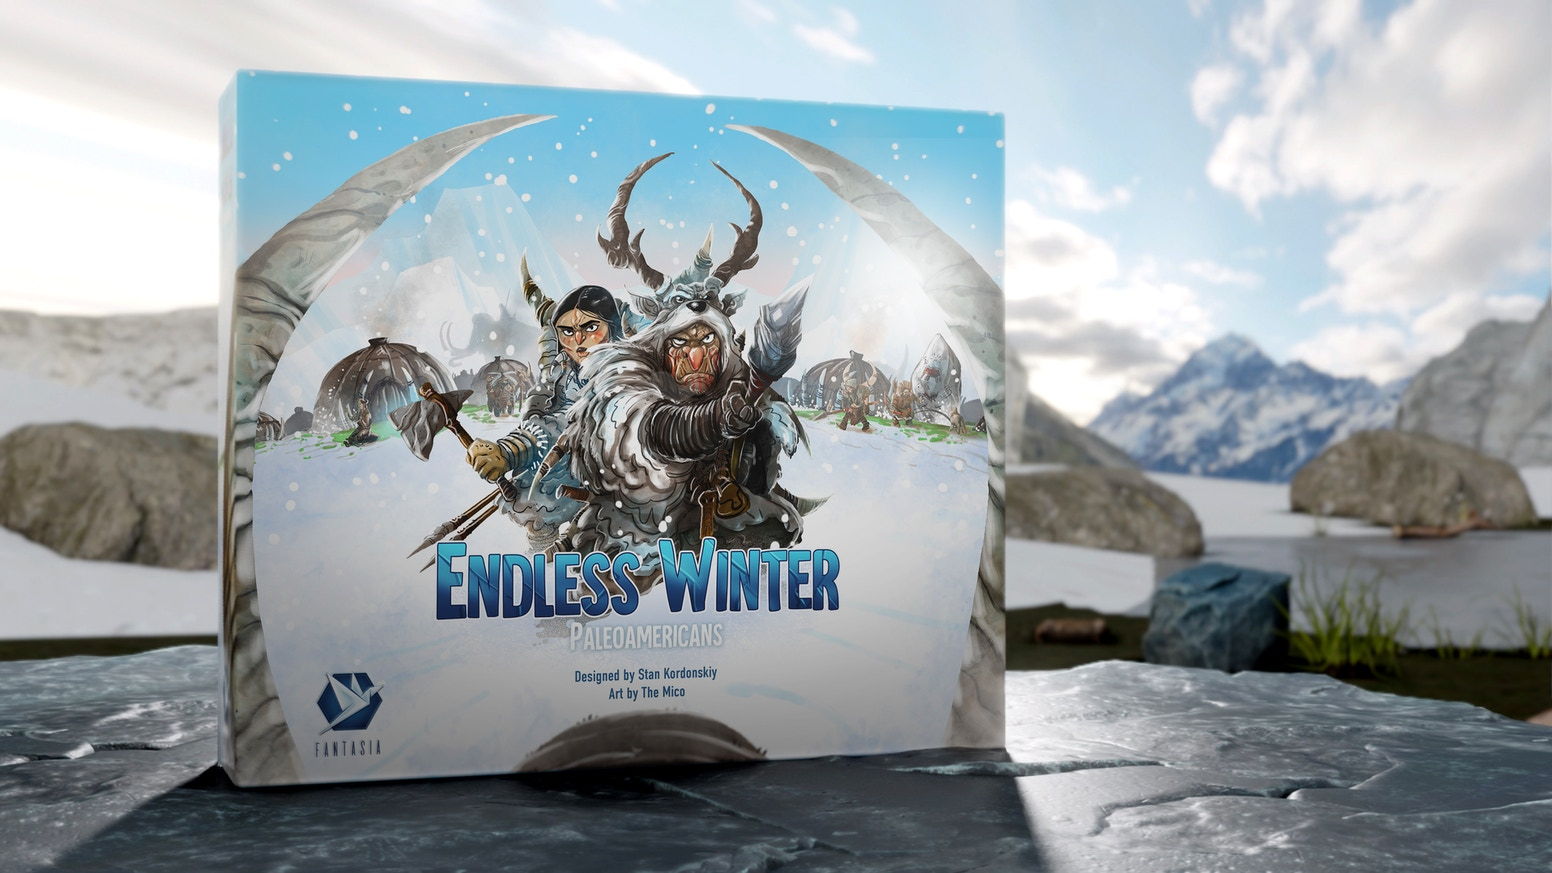 A unique board game set in the ice age that combines worker placement and deck building in an innovative way.